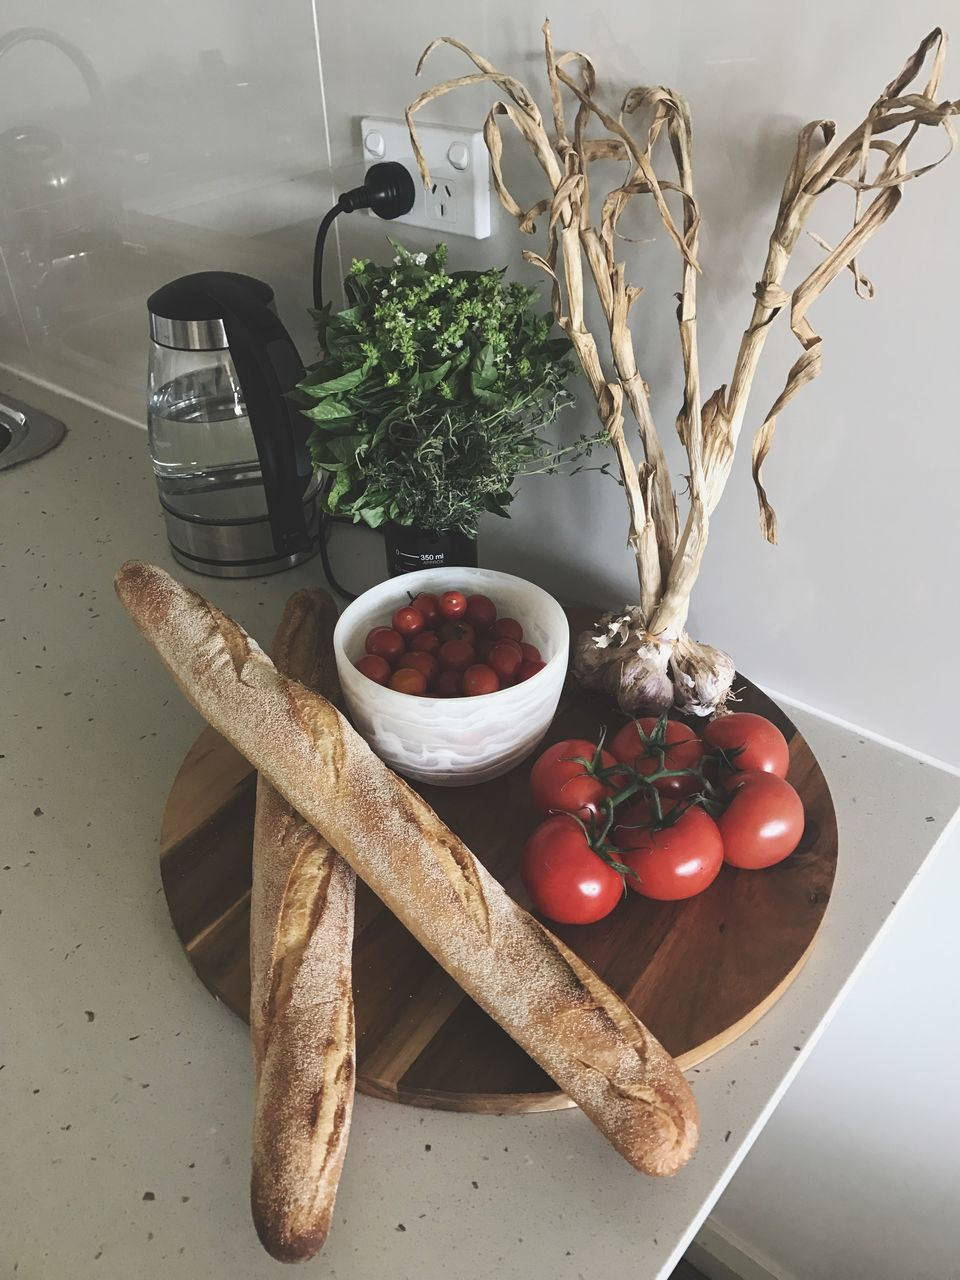 food, tomato, food and drink, freshness, table, vegetable, healthy eating, no people, herb, high angle view, indoors, cutting board, close-up, day